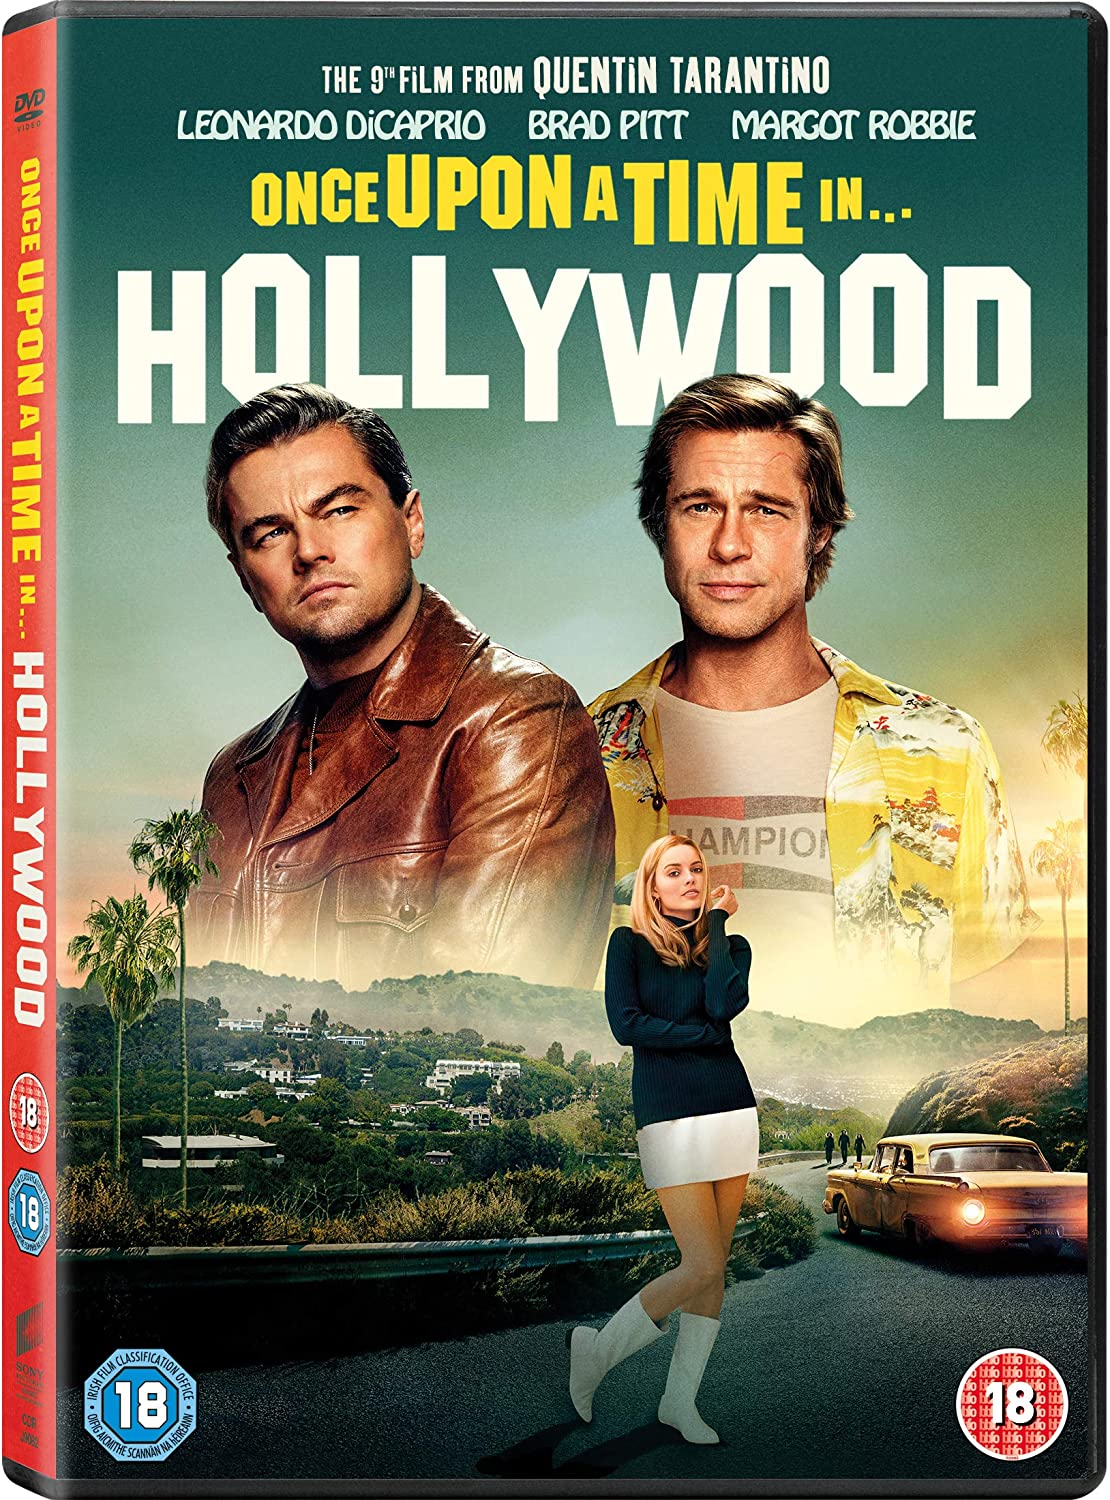 Once Upon A Time In Hollywood Dvd 2019 Amazon Co Uk Leonardo Dicaprio Brad Pitt Margot Robbie Emile Hirsch Margaret Qualley Timothy Olyphant Julia Butters Austin Butler Dakota Fanning Bruce Dern Mike Moh Luke